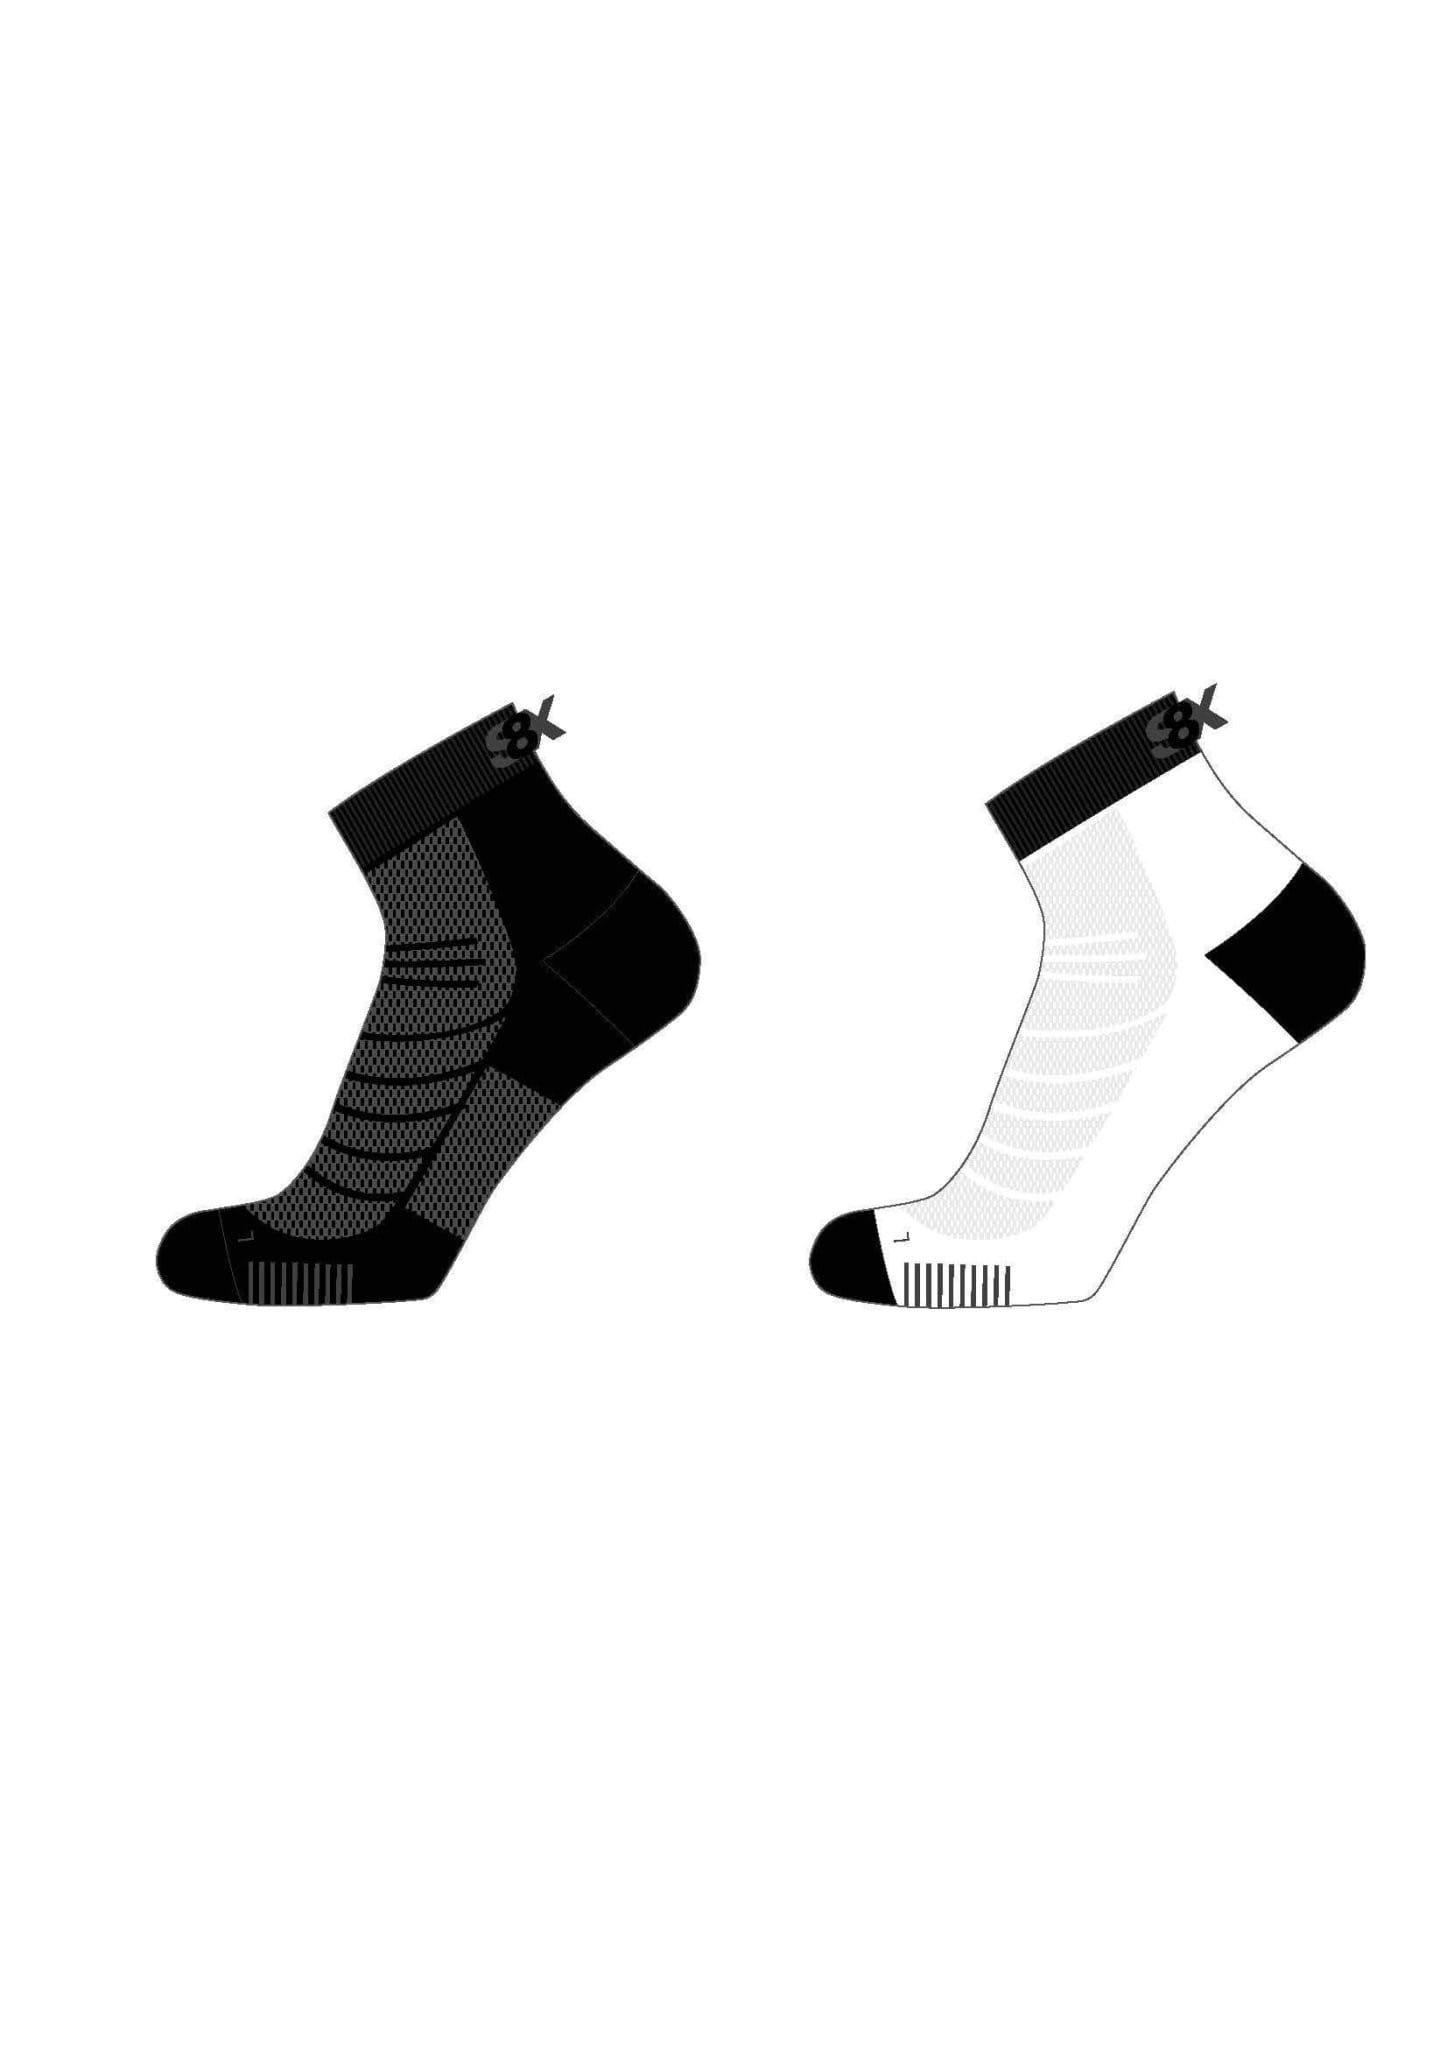 Eightsox Socks Long - CHK-SHIELD | Outdoor Army - Tactical Gear Shop